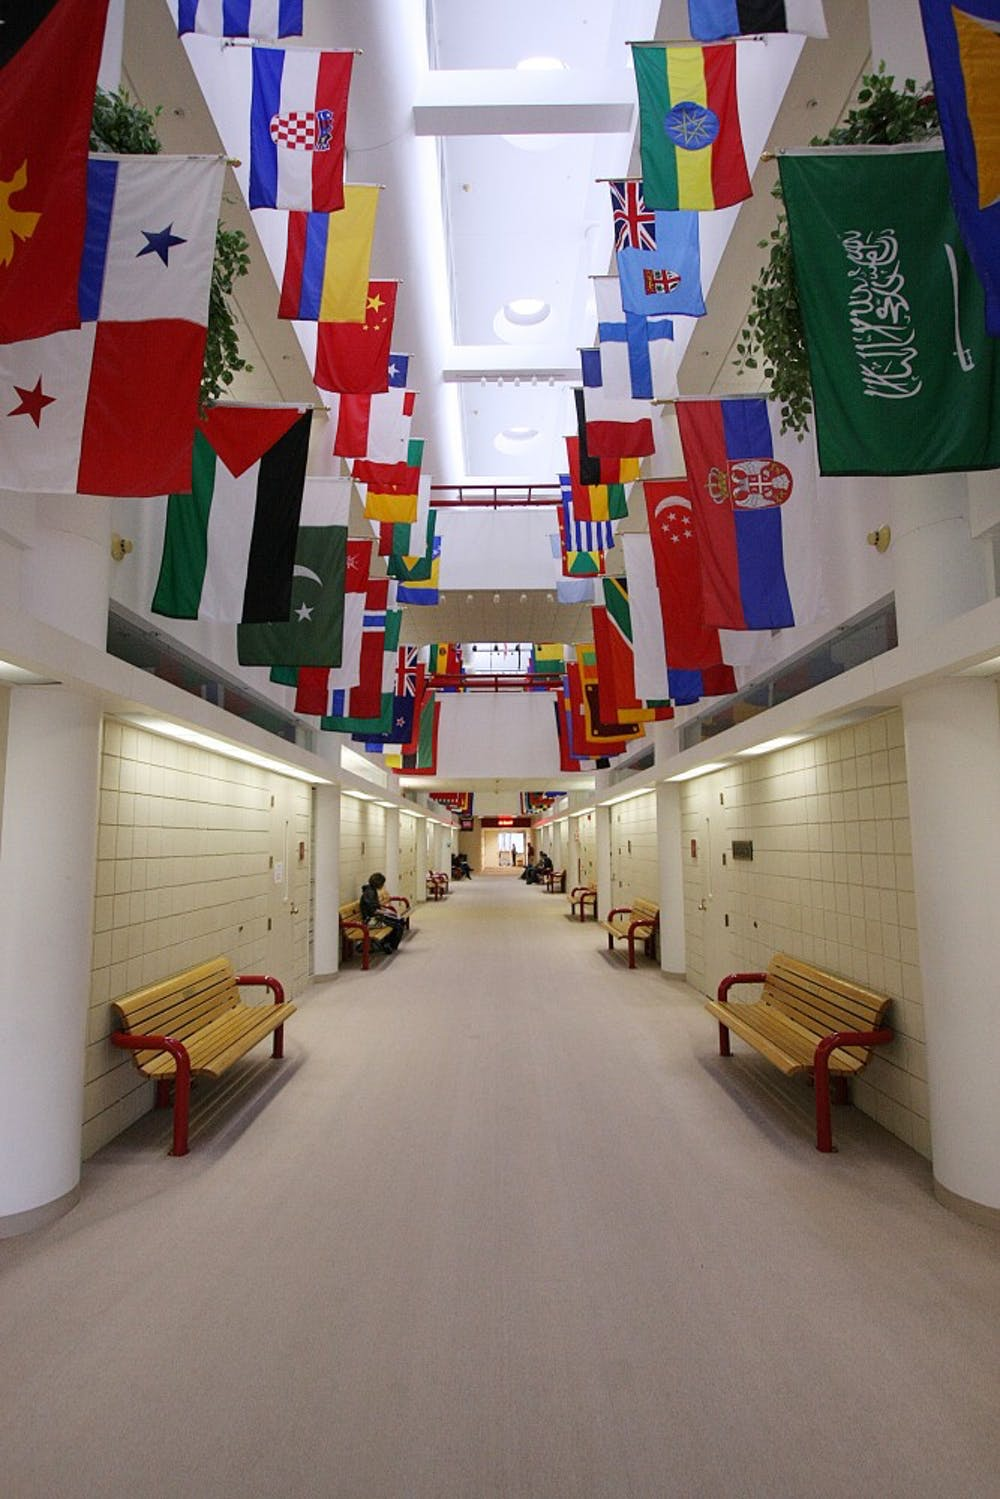 EMU business school honored as one of the best